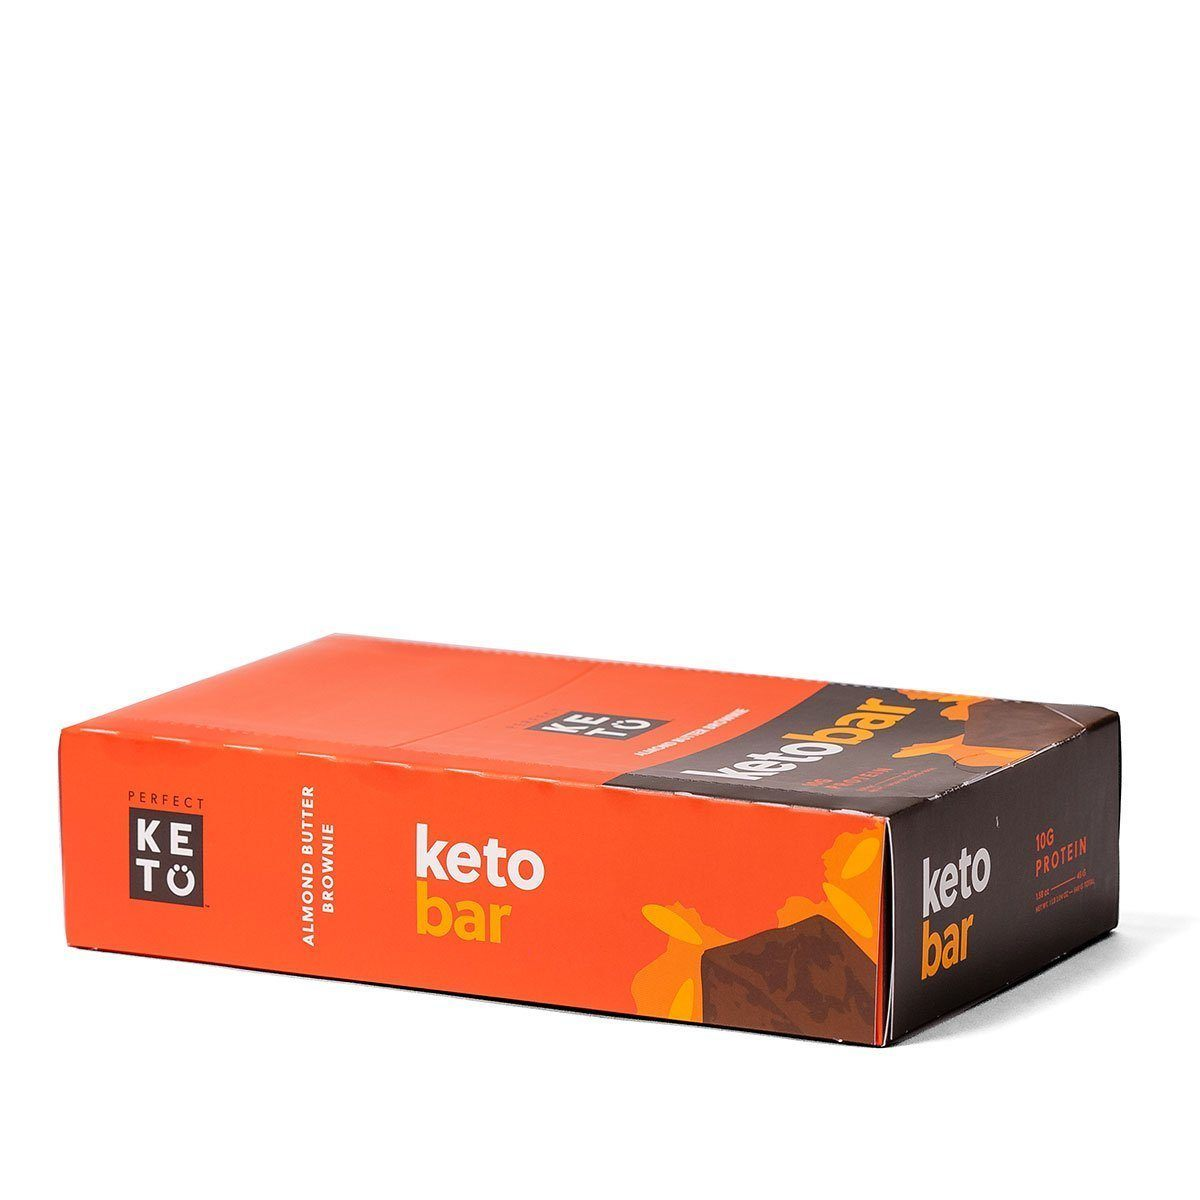 almond butter brownie keto bars in a bright orange box